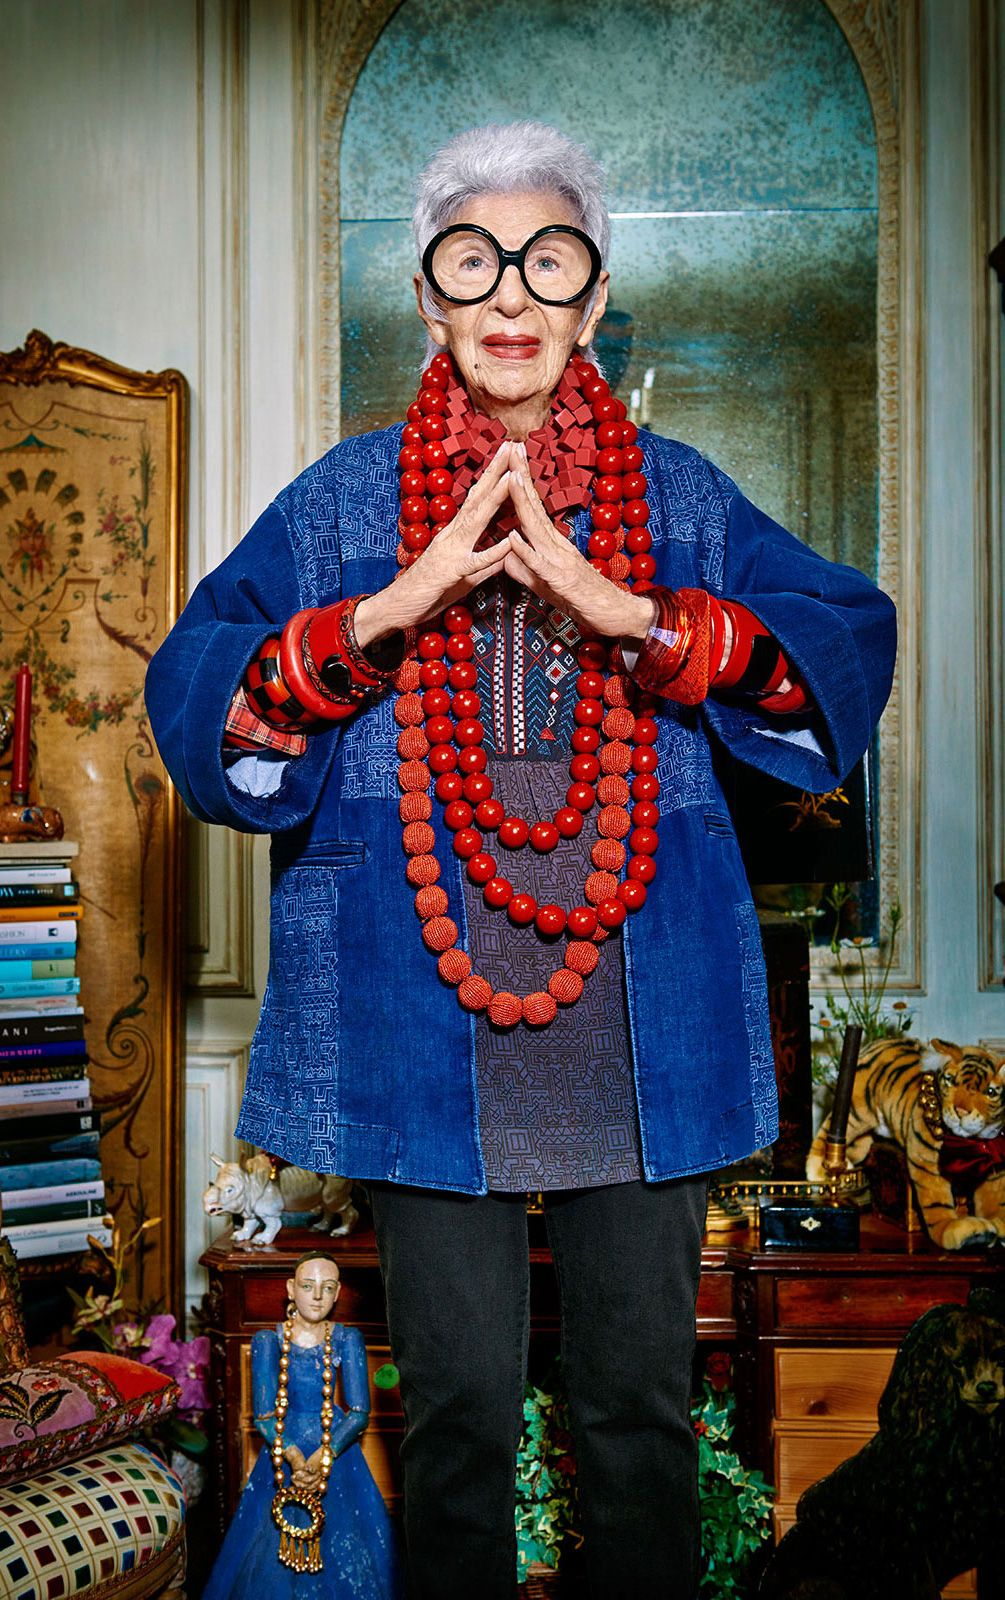 94YearOld Iris Apfel Is Cooler Than You'll Ever Be, as